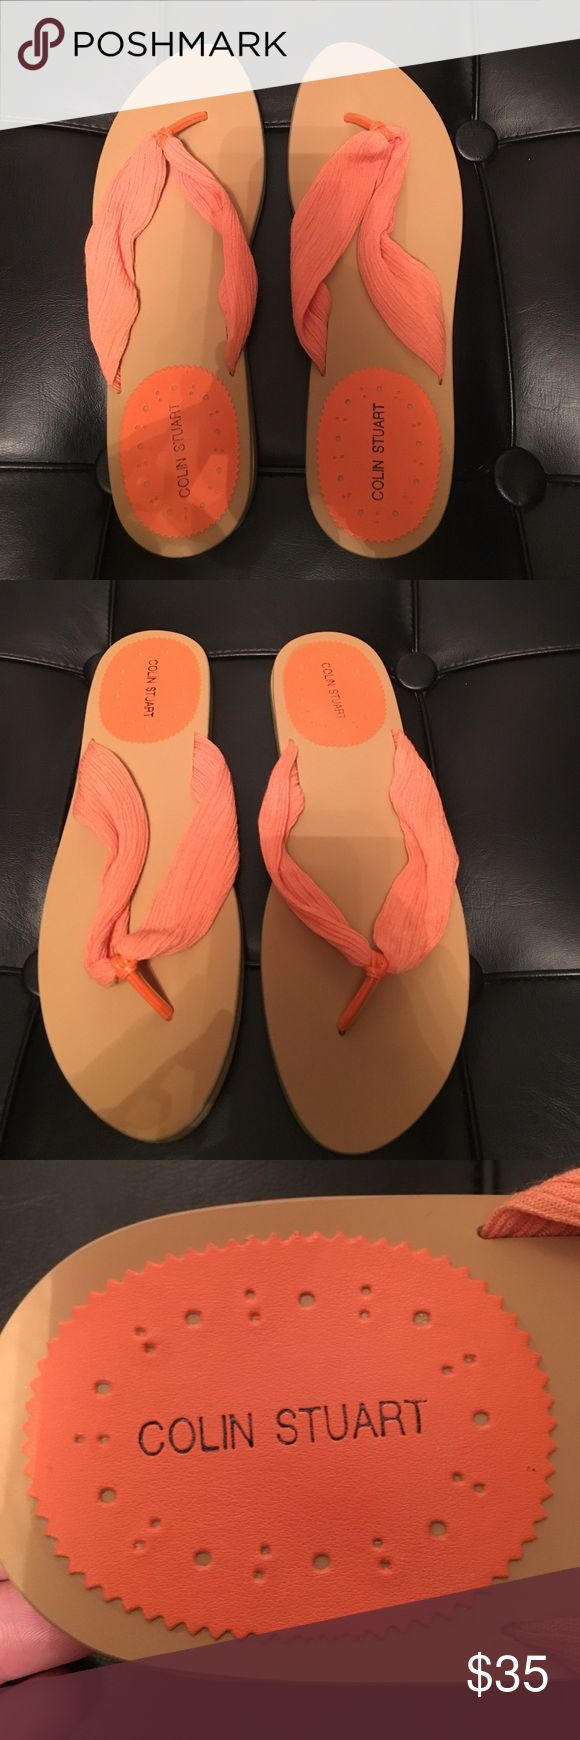 NWT Colin Stuart Beautiful very luxurious looking. NWT, Colin Stuart sandals. Beautiful orange fabric, very luxurious looking. Colin Stuart Shoes Sandals